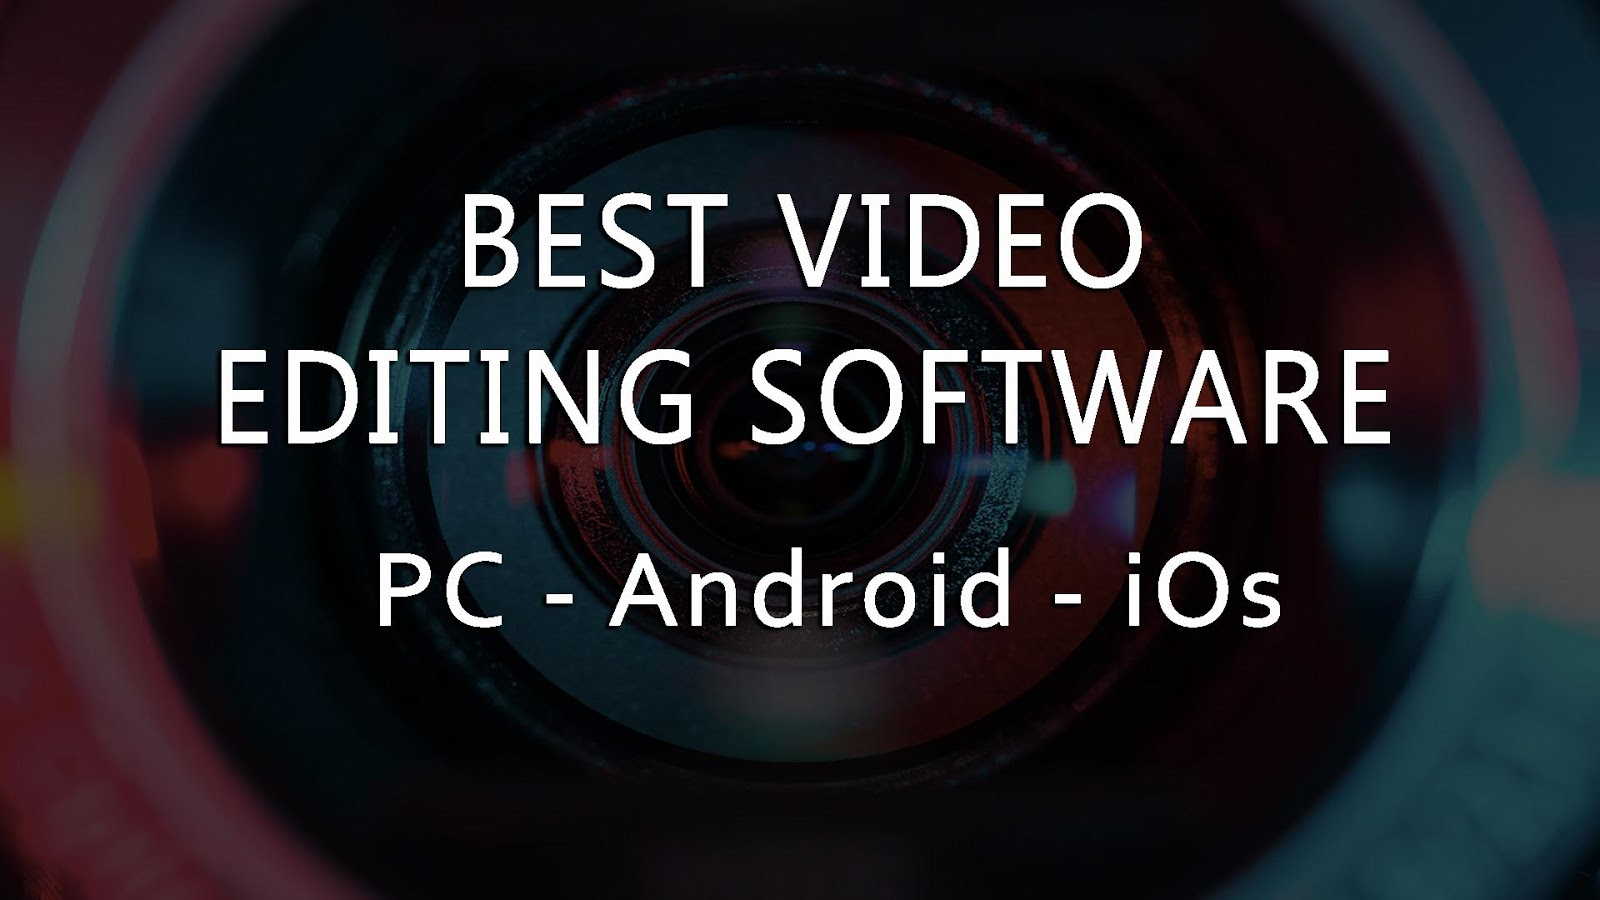 Best Video Editing Software for PC, Mac, Android, iOS